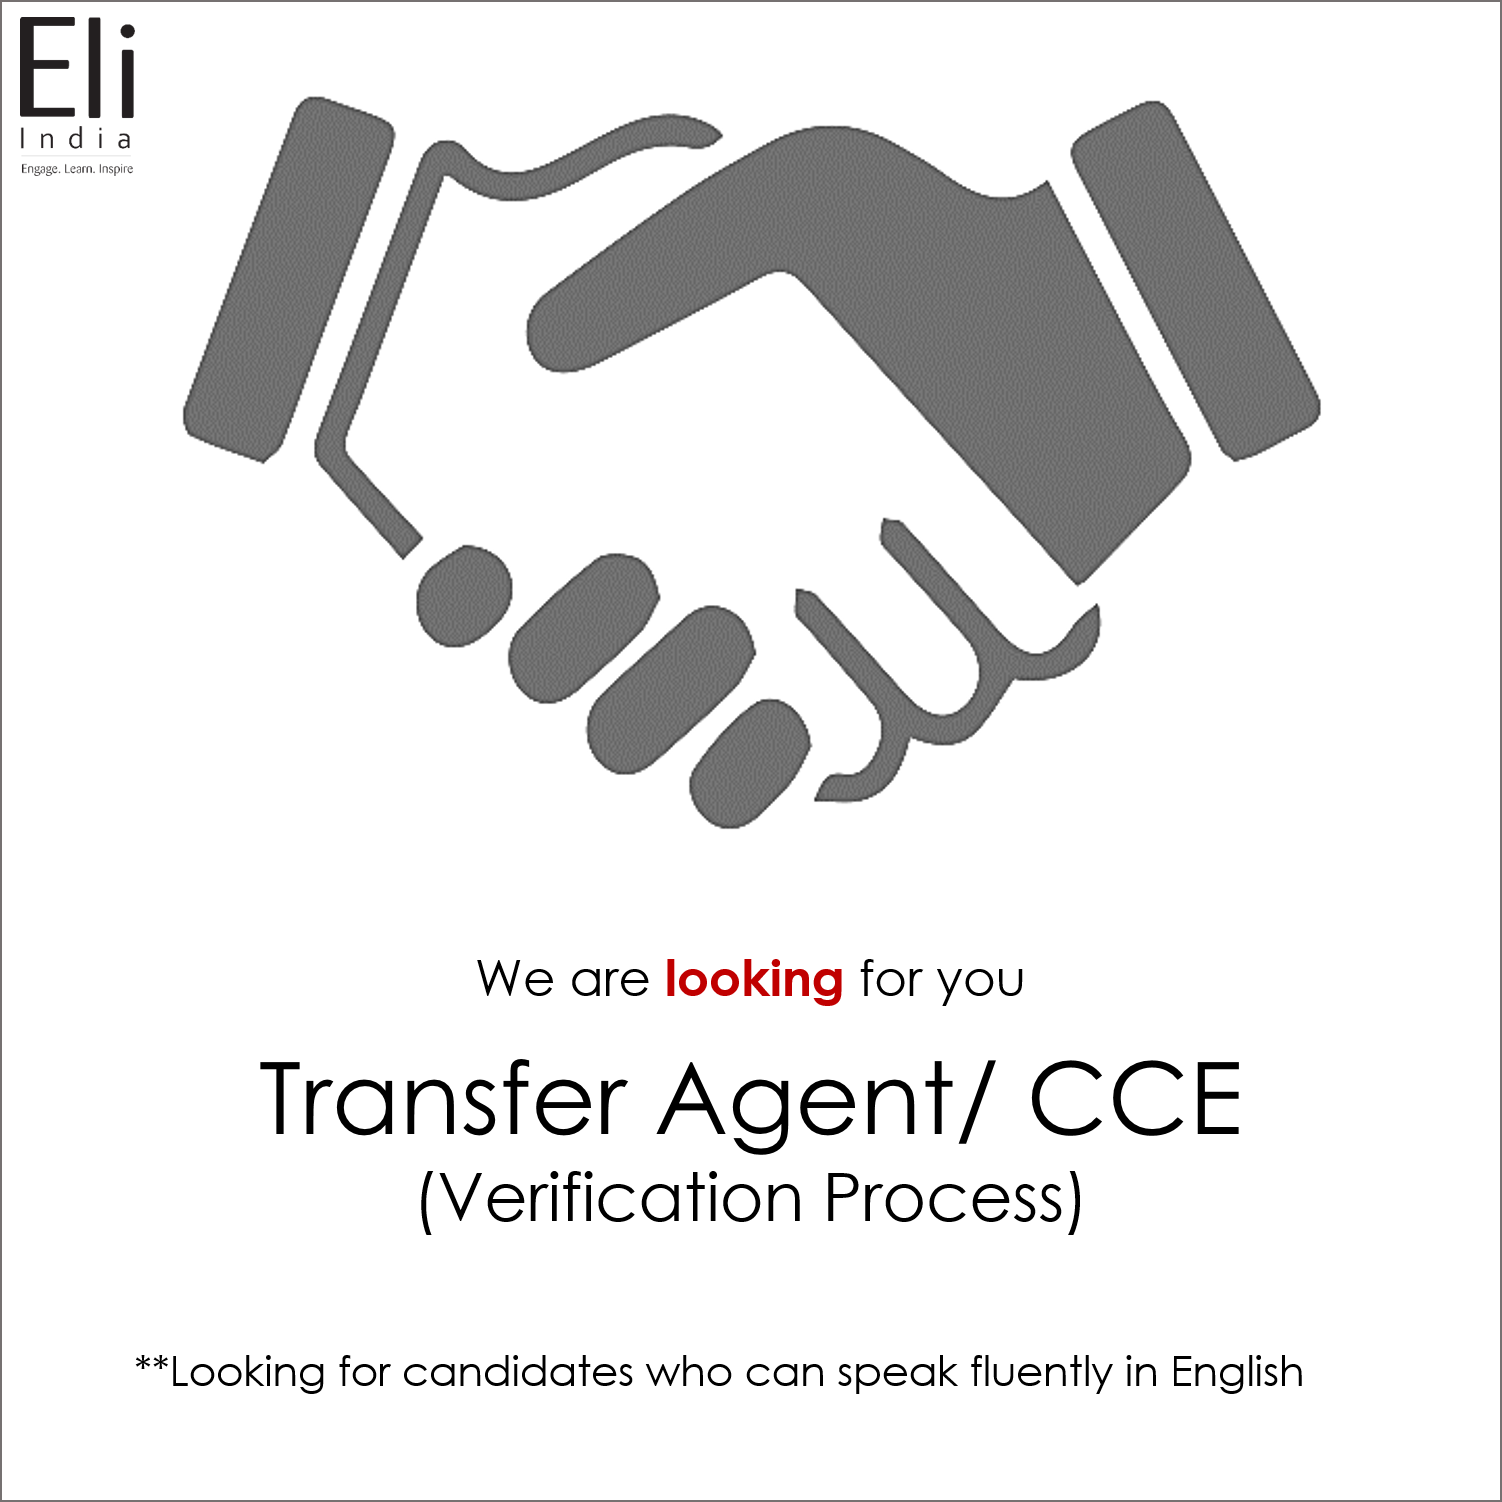 We are looking for Transfer Agent/ CCE for Verification